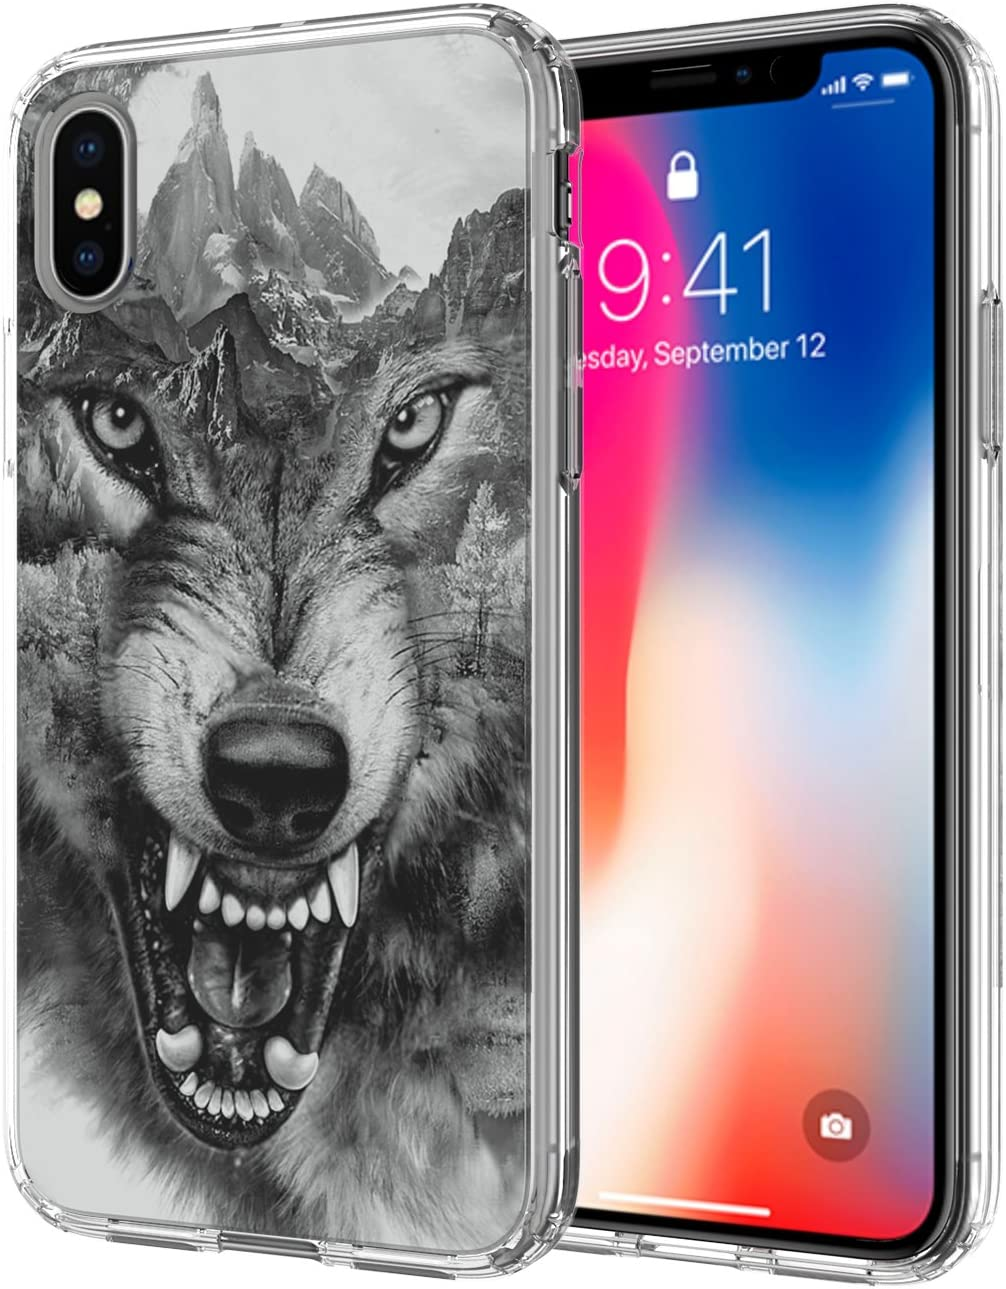 Case for iPhone Xs Max, Ailiber Animal Wolf Direwolf Wild Design Slim Light Soft TPU Shockproof Corners Bumper Protective Cover for Apple iPhoneXSMax XsMax 2018 6.5inch - Grey Wolf